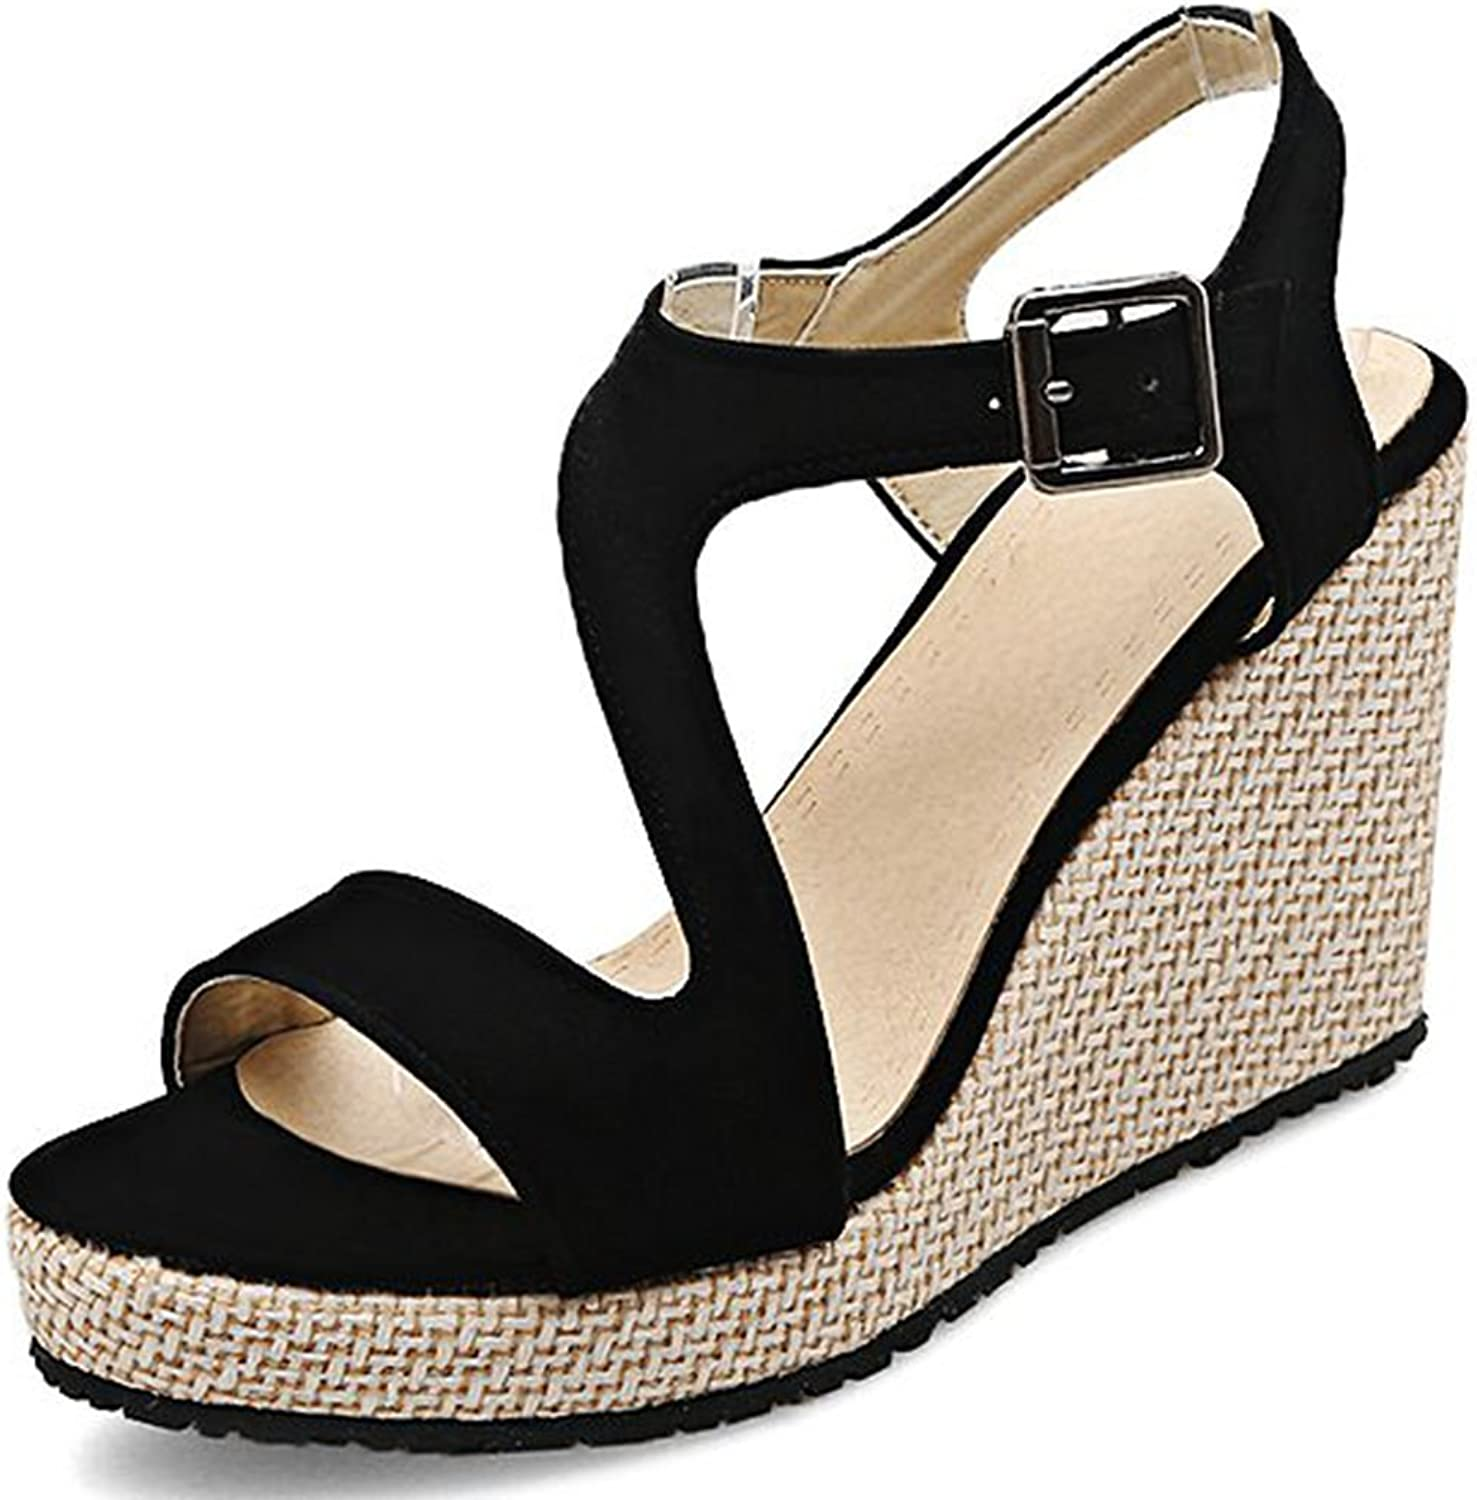 DecoStain Women's Leisure Ankle Strap Sandals Buckle Party Platform Prom Wedges Sandals